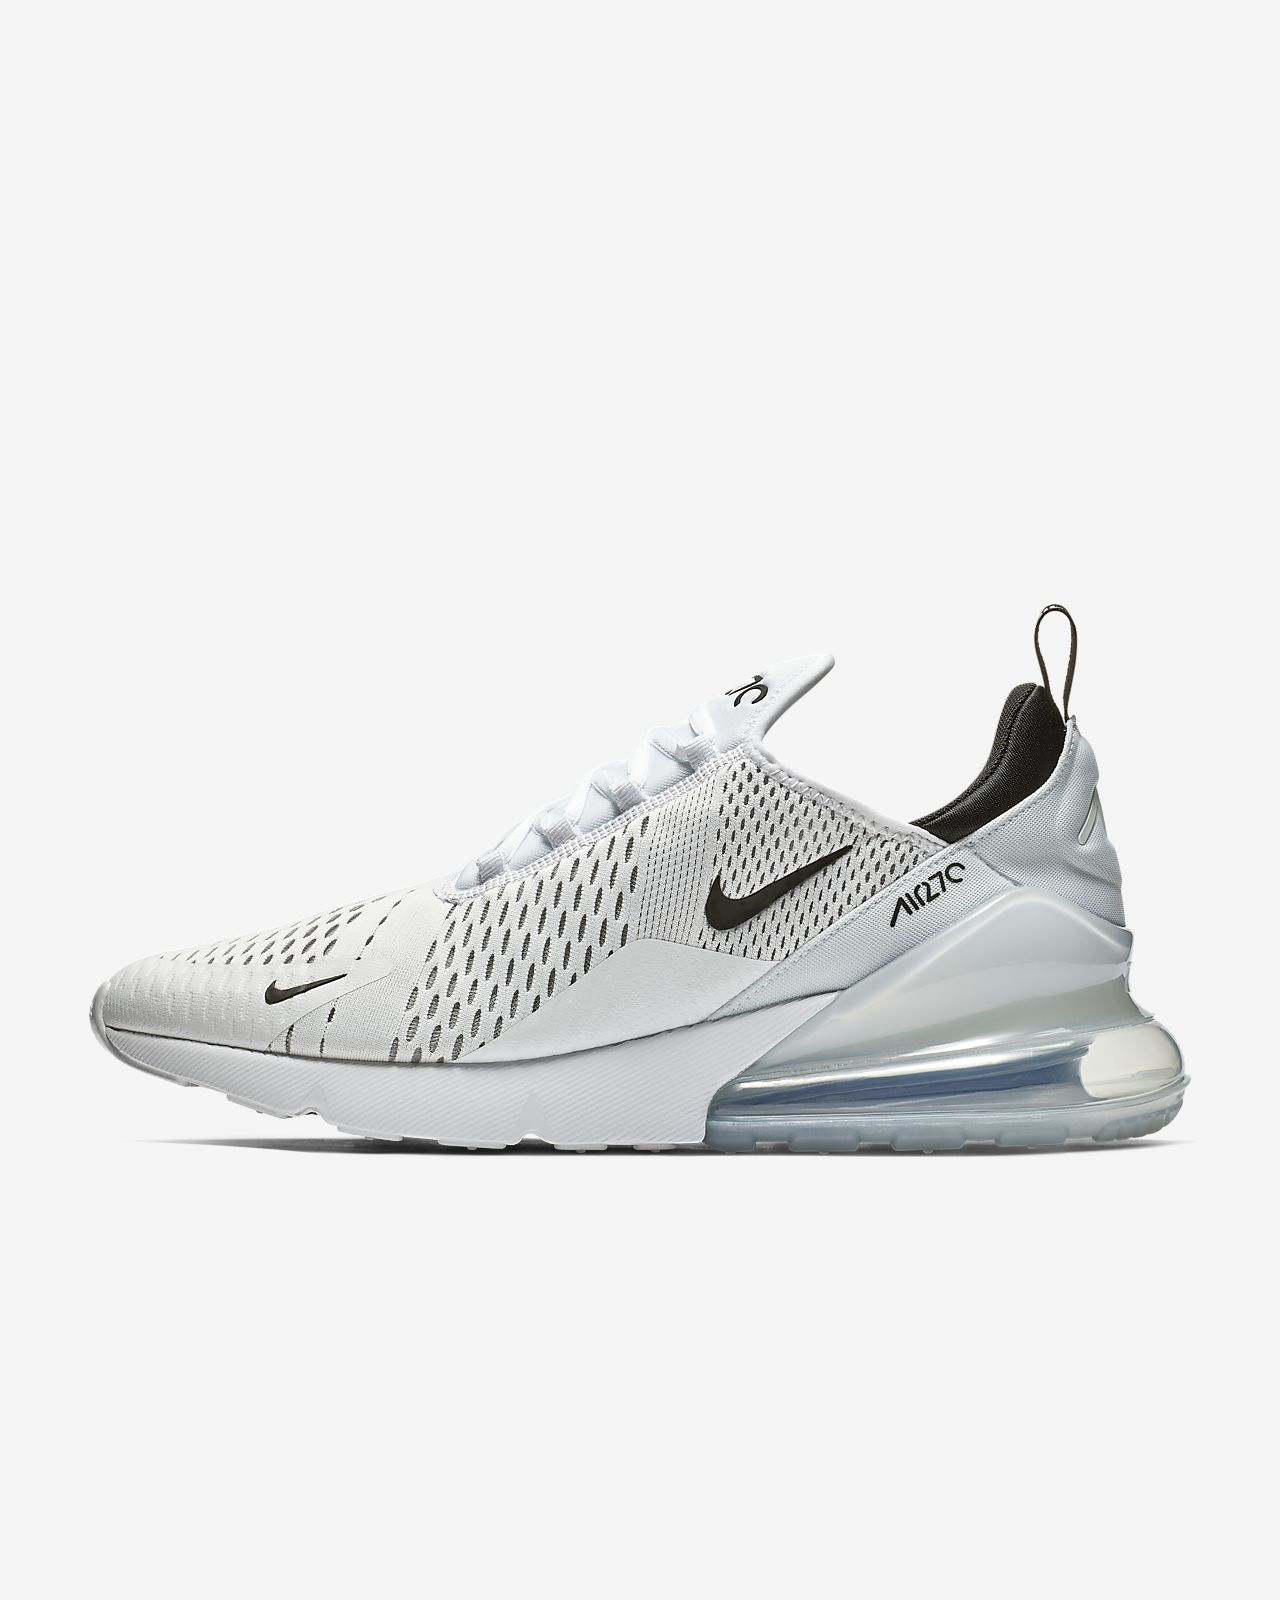 promo code fe1e9 7e70d Nike Air Max 270 Men's Shoe. Nike.com GB